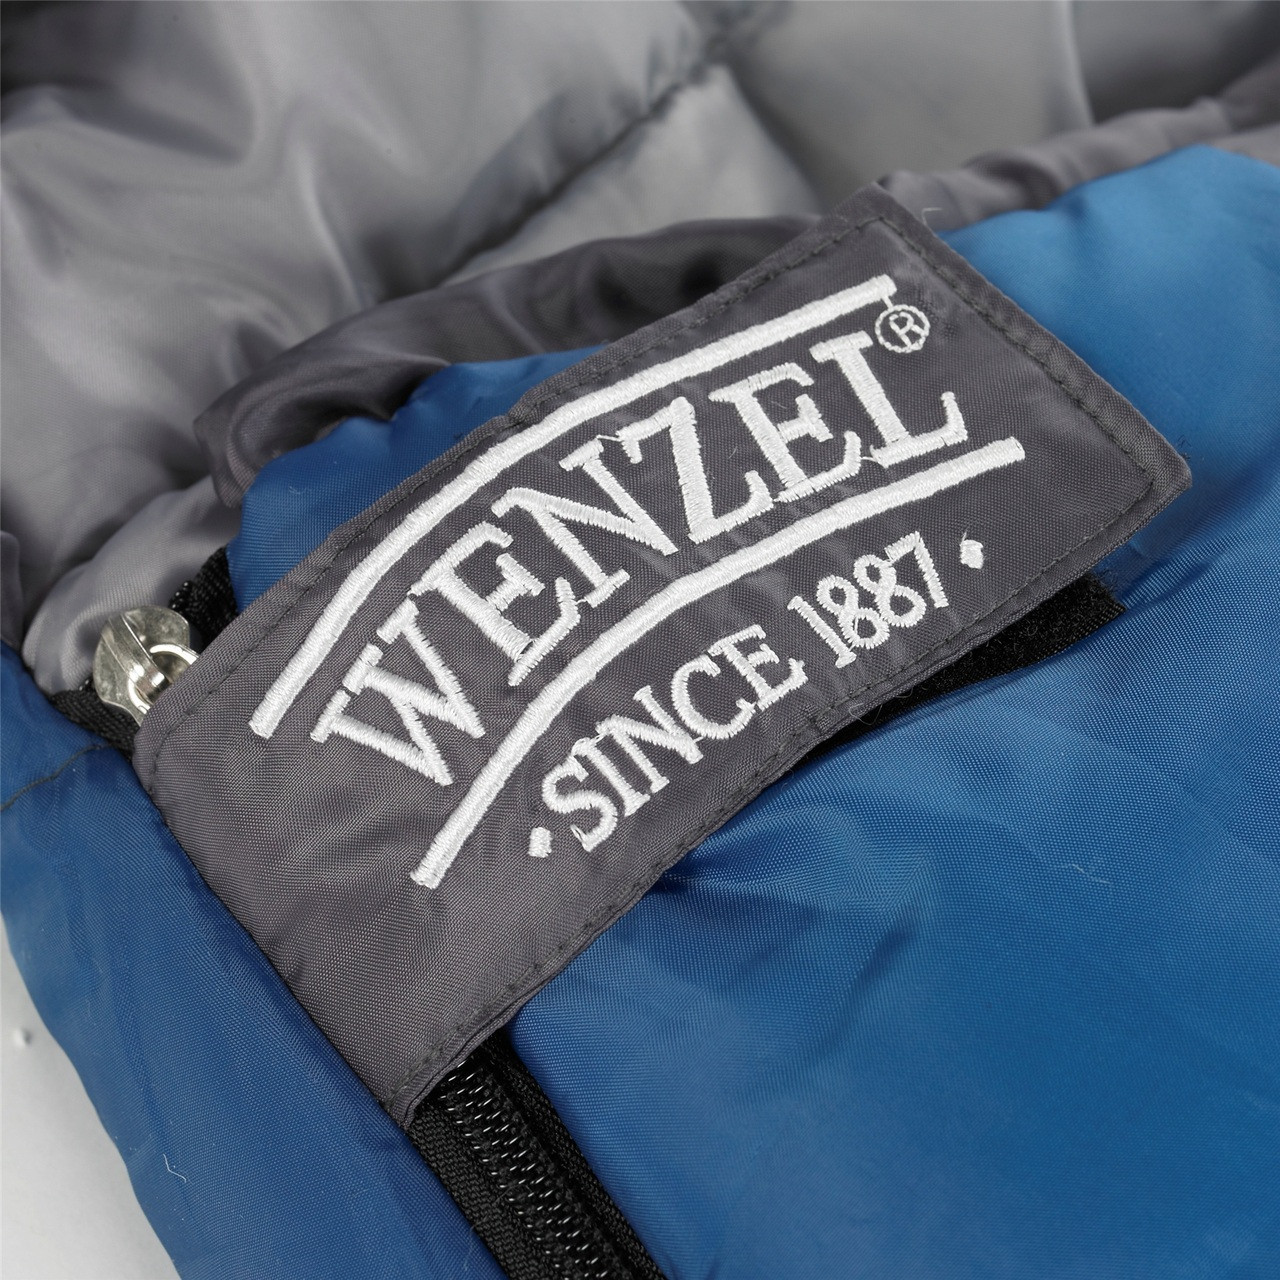 Close up view of the Velcro zipper latch over the zipped showing 'Wenzel since 1887' text